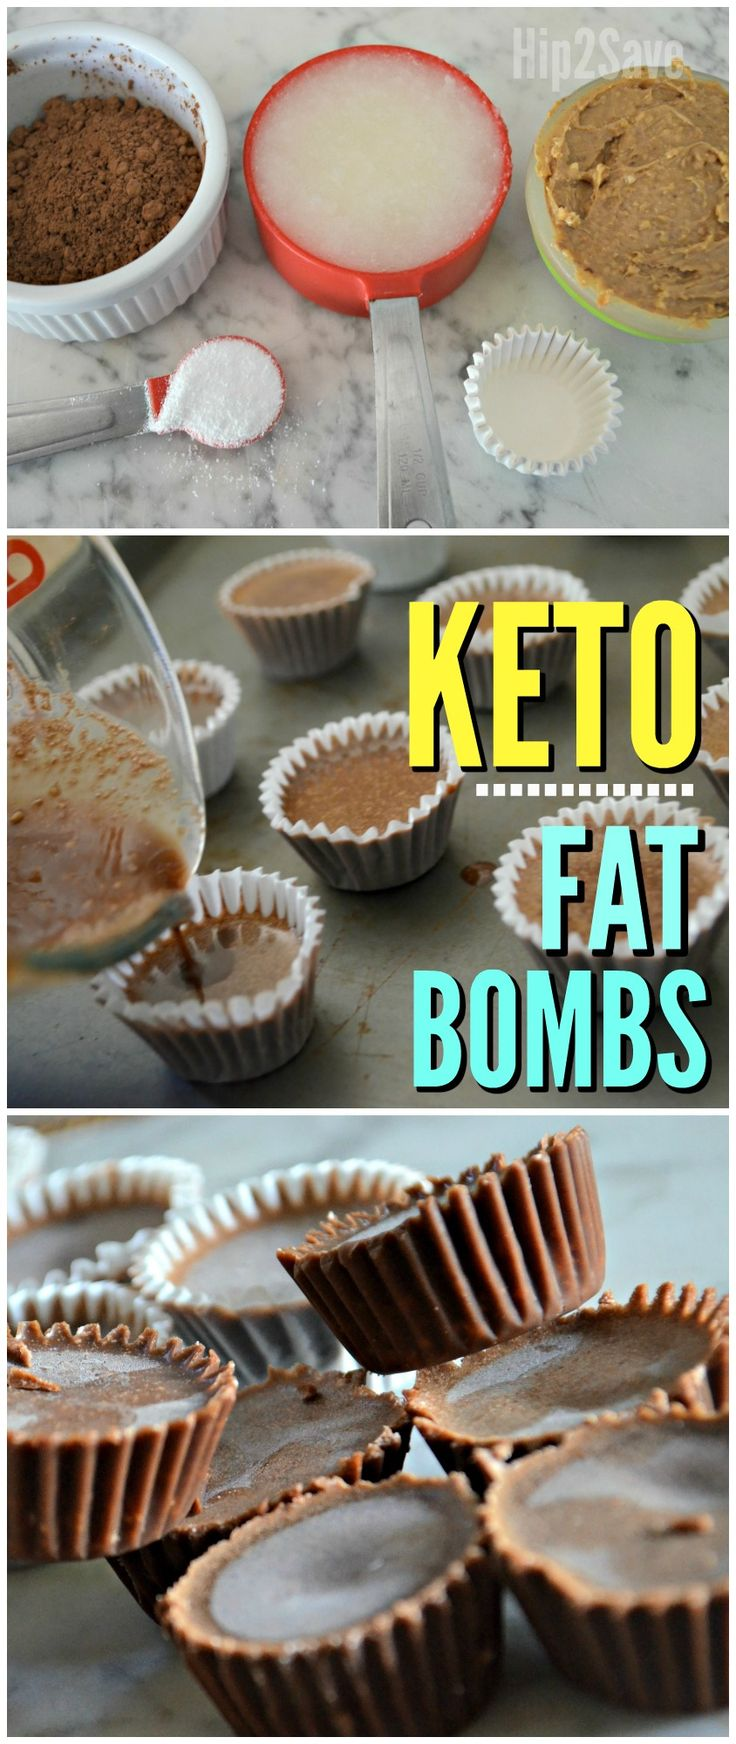 Eating low carb or Keto and craving chocolate? Take the edge off with these 4 ingredient Chocolate KETO FAT BOMBS!